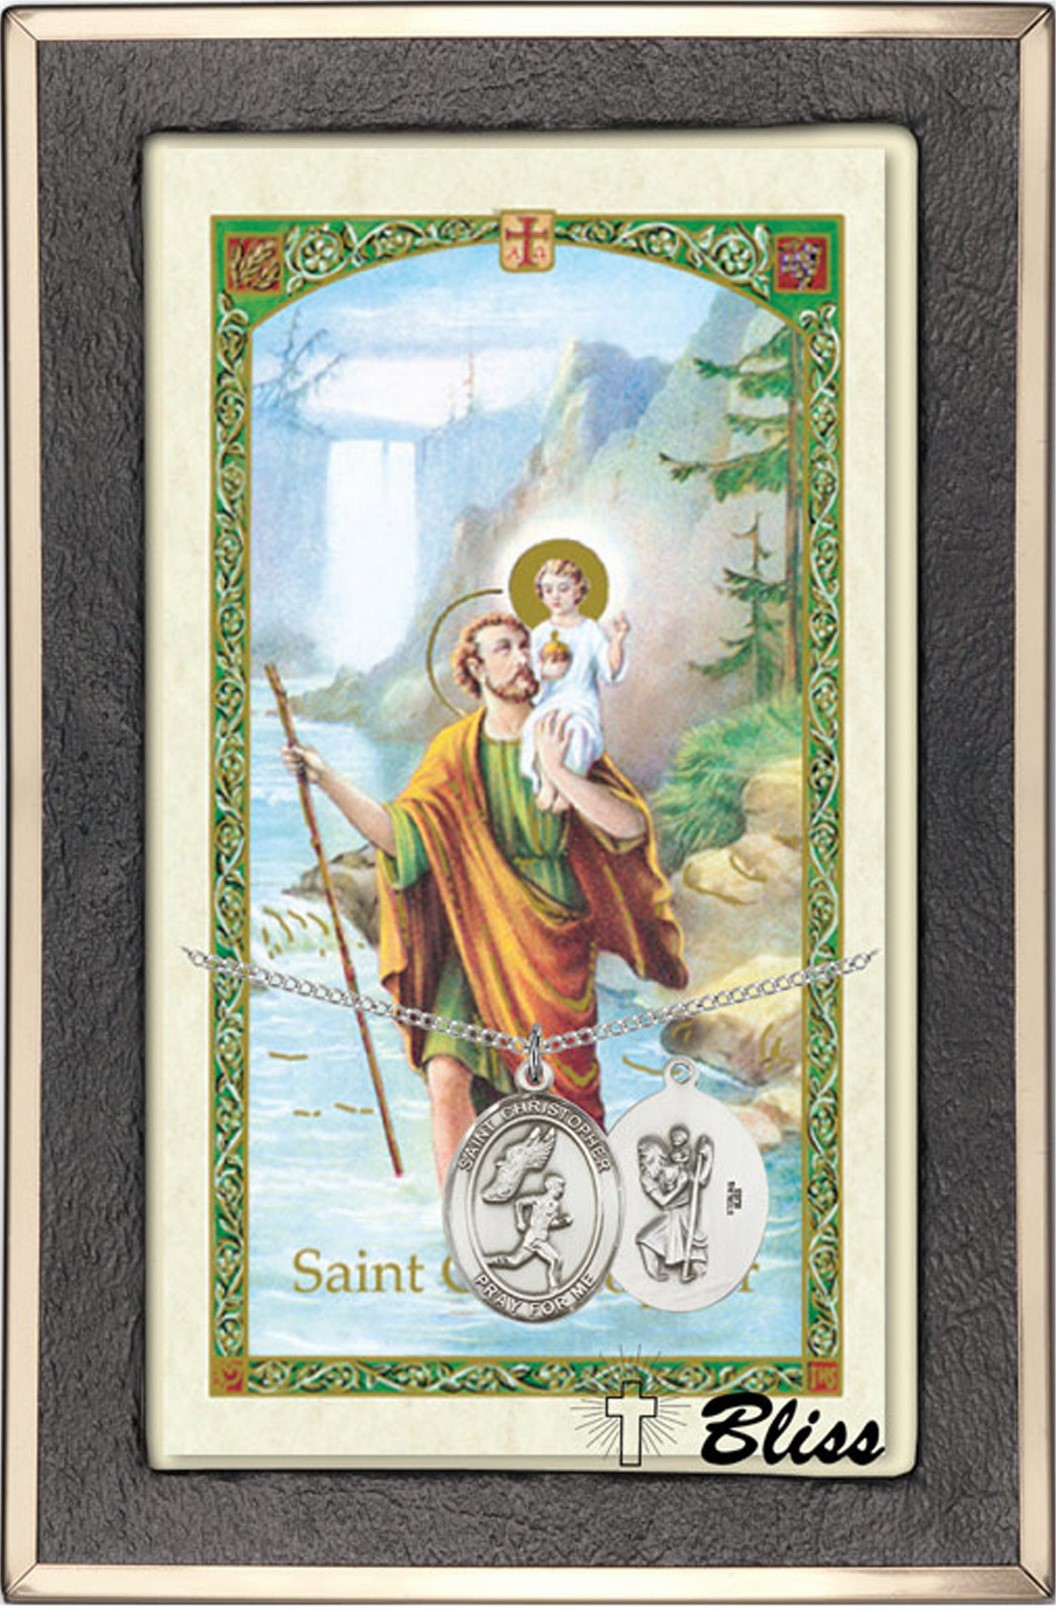 St Christopher Mens Track Prayer Card & Sterling-Filled Necklace by Bliss